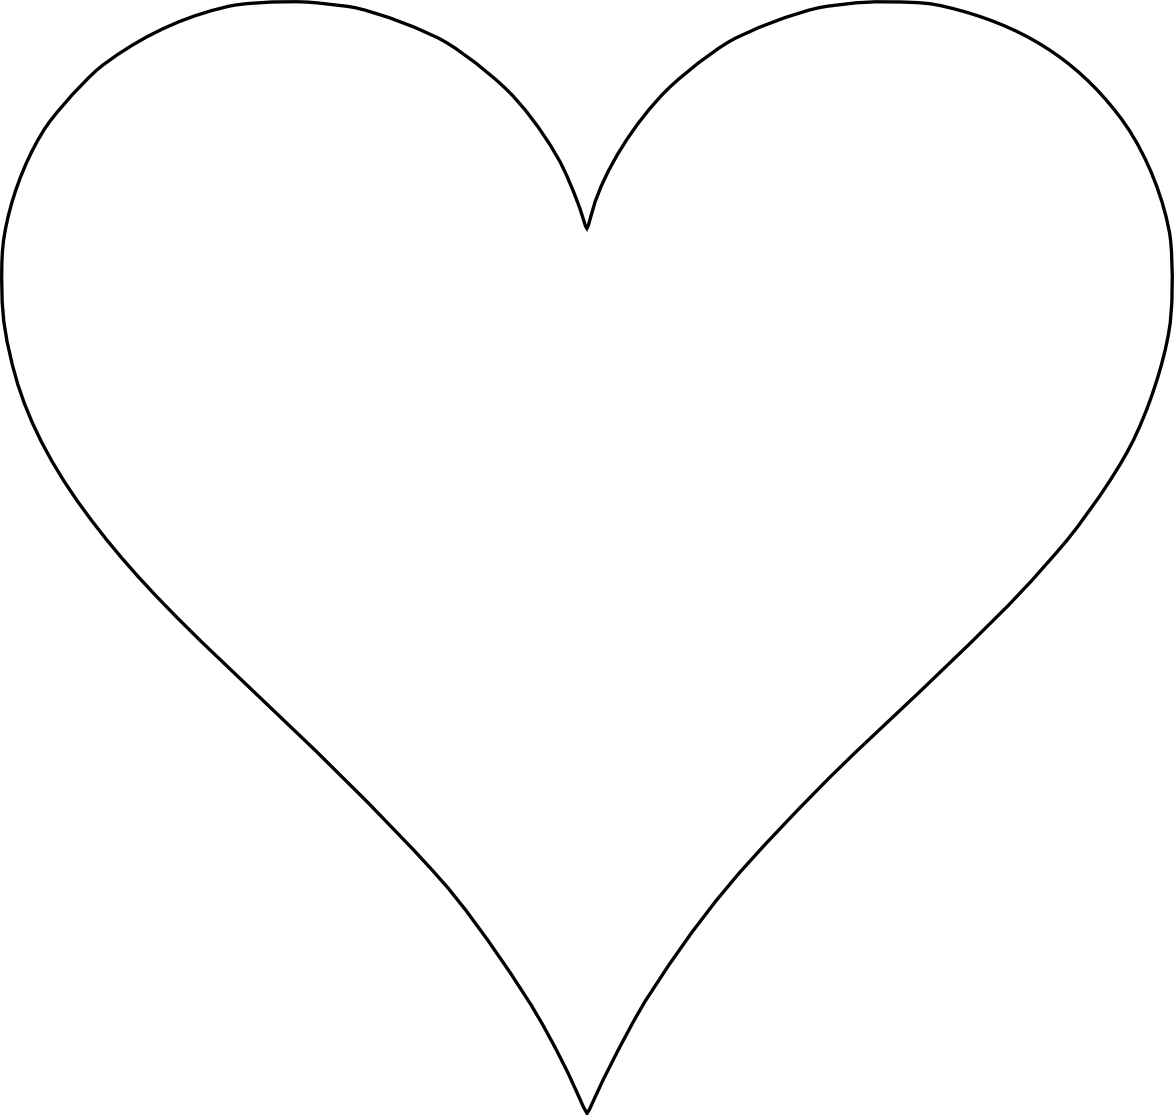 Crazy image intended for heart shape printable